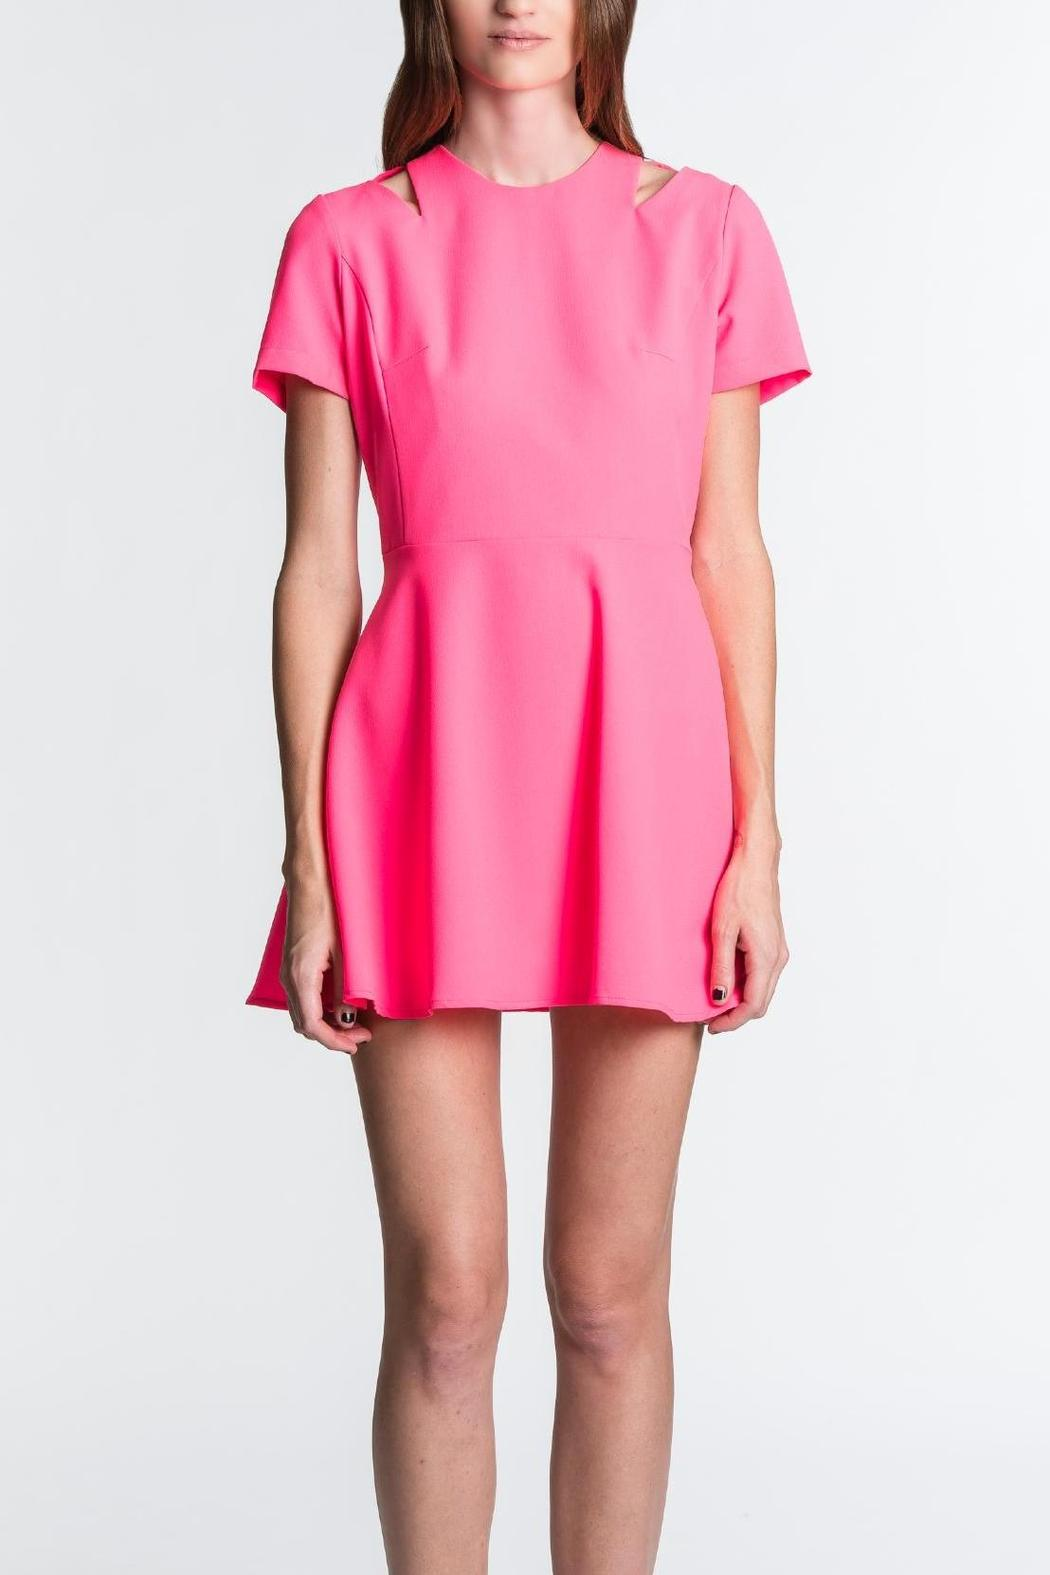 Blaque Label Pink Swing Dress - Main Image